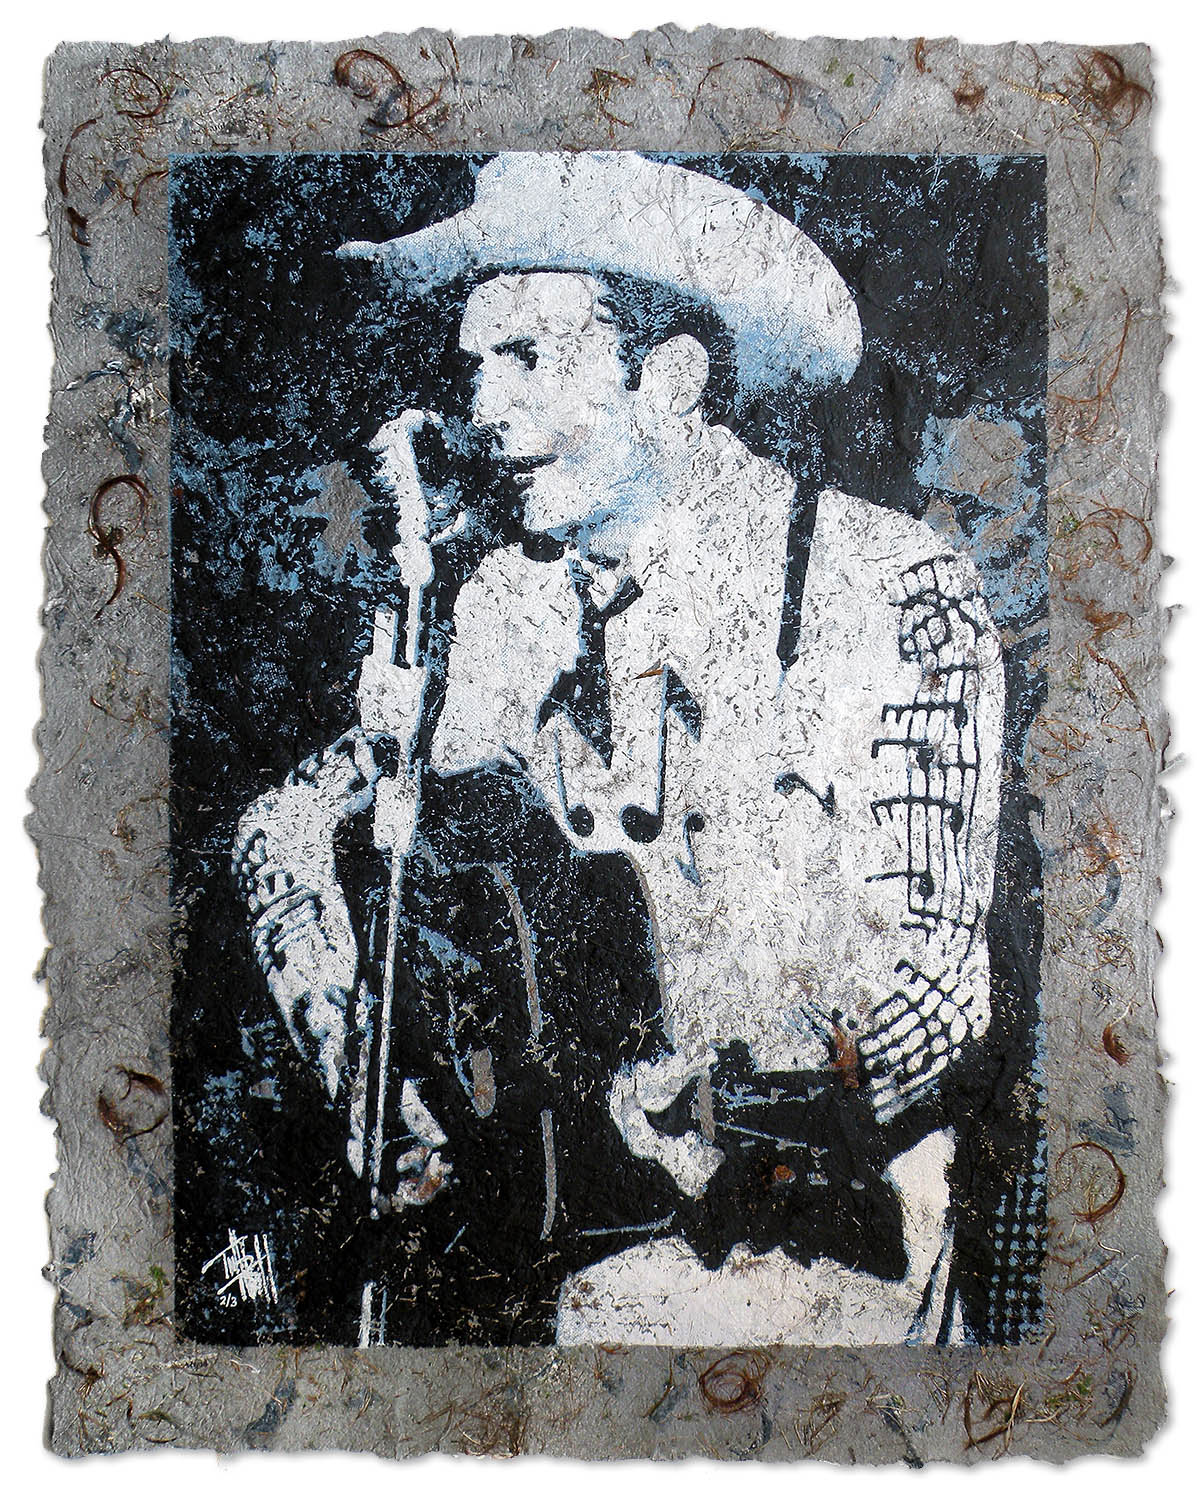 Hank Williams Senior by Terrell Thornhill